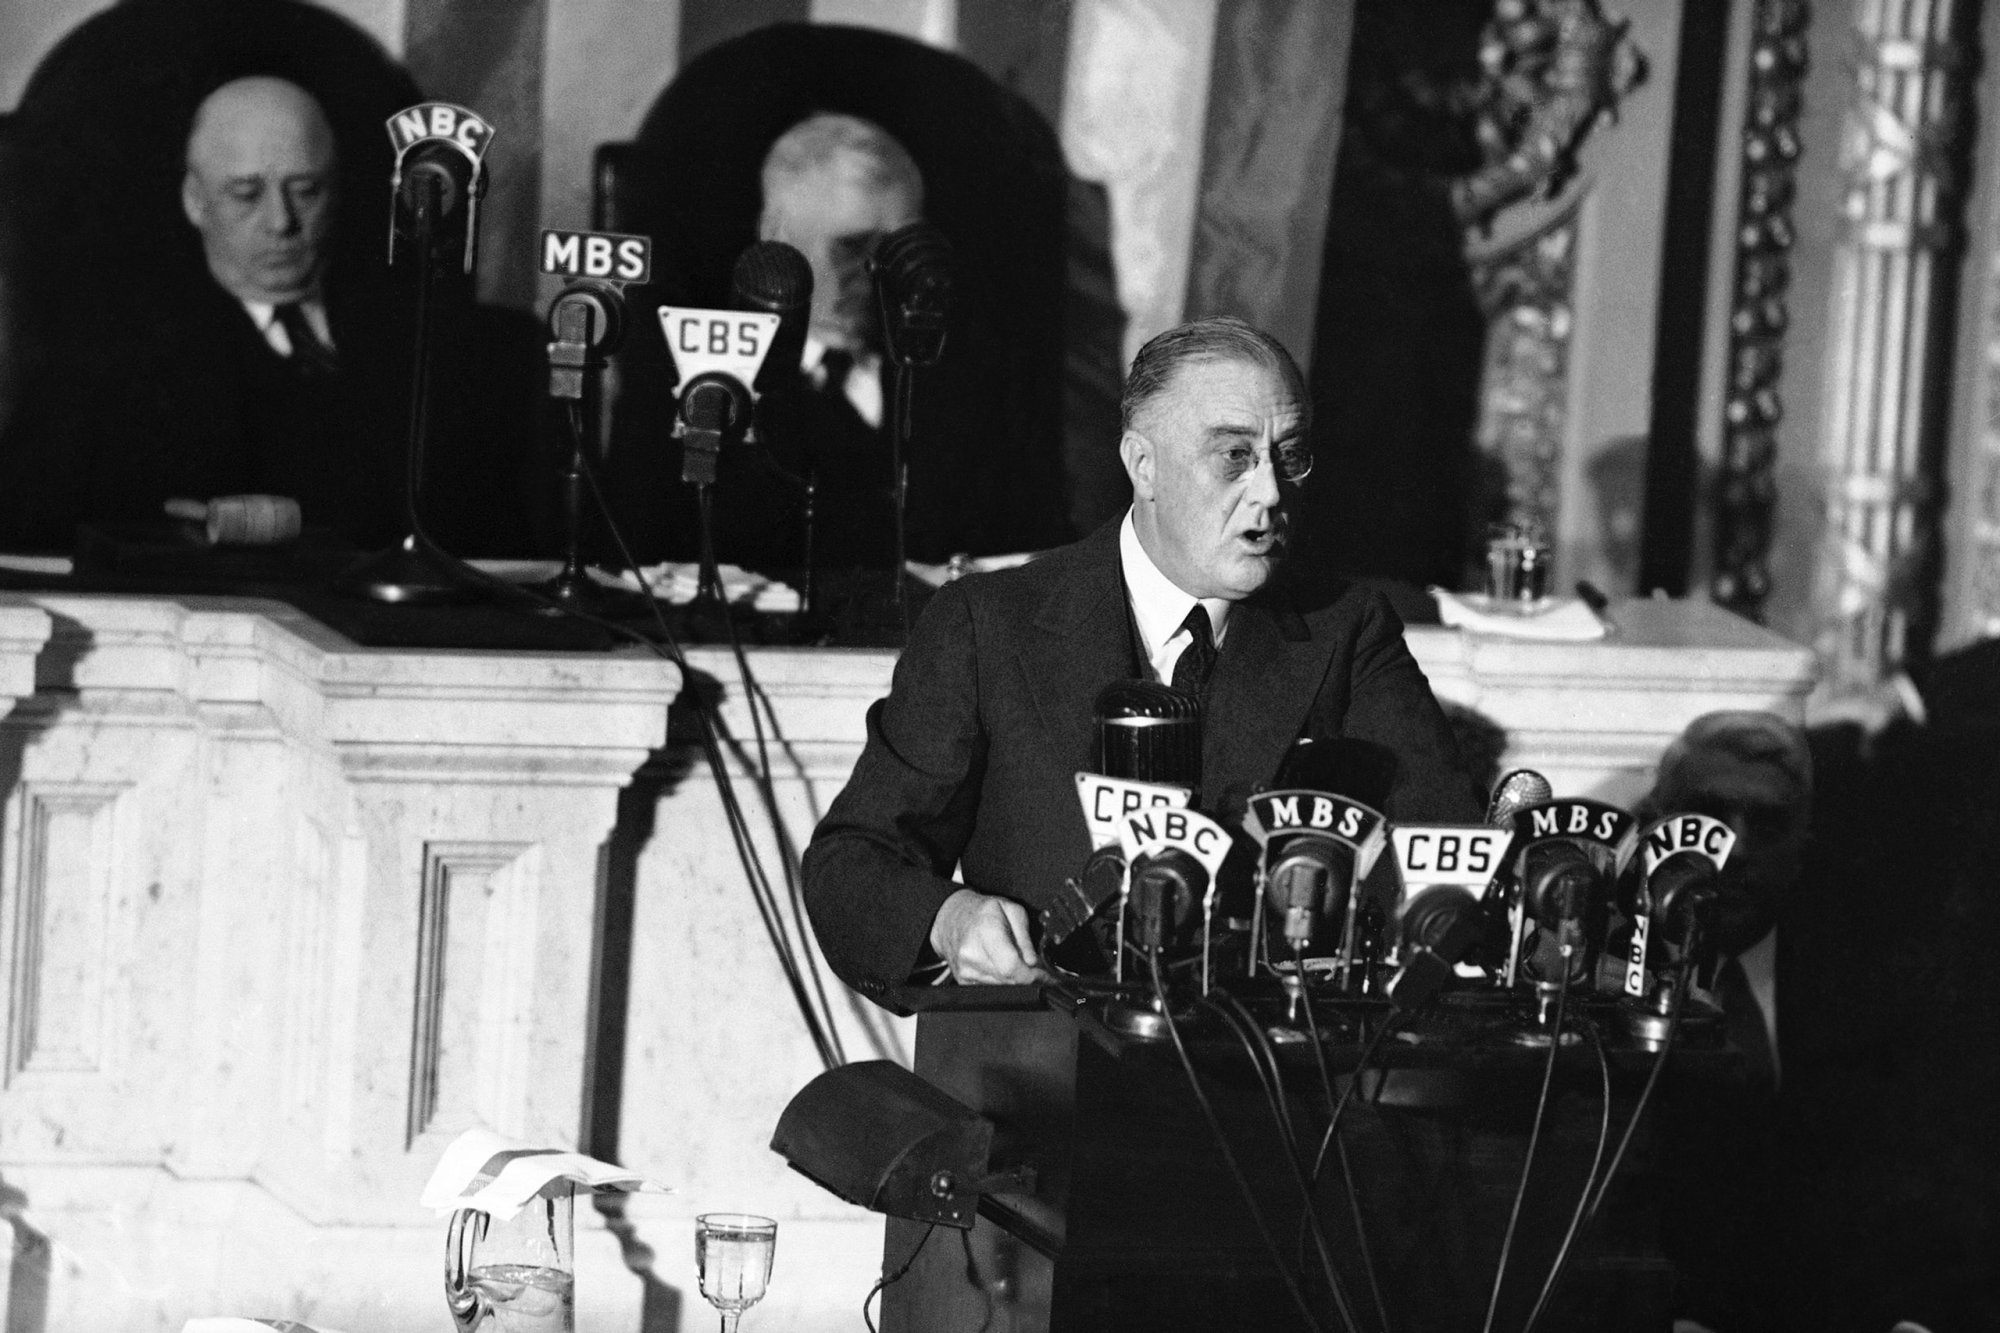 President Franklin Delano Roosevelt delivers his State of the Union address on January 6, 1941, including his famous Four Freedoms speech.